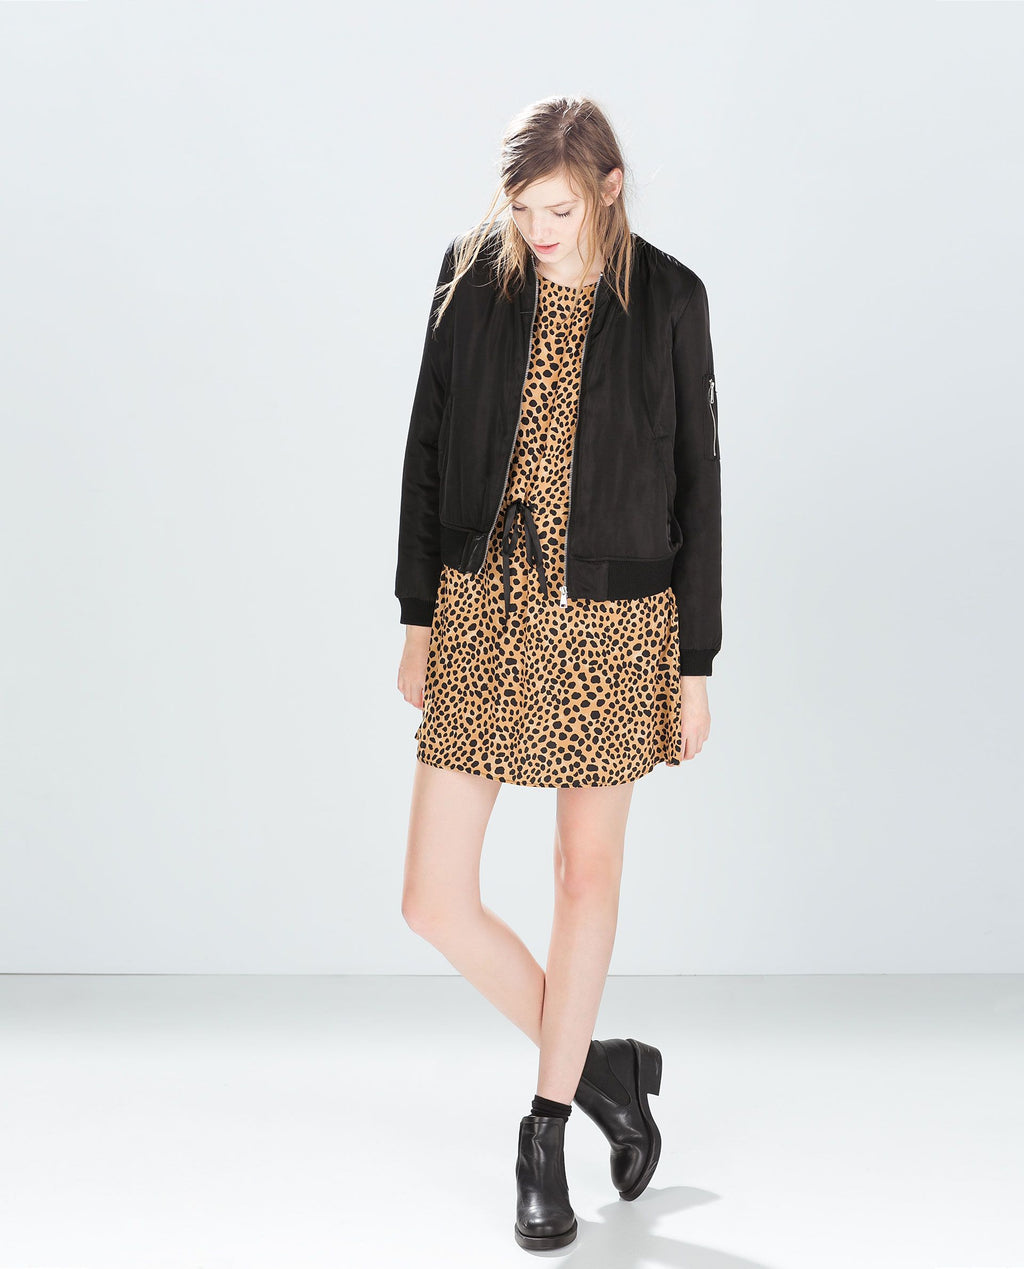 Zara Animal Print Dress Size M